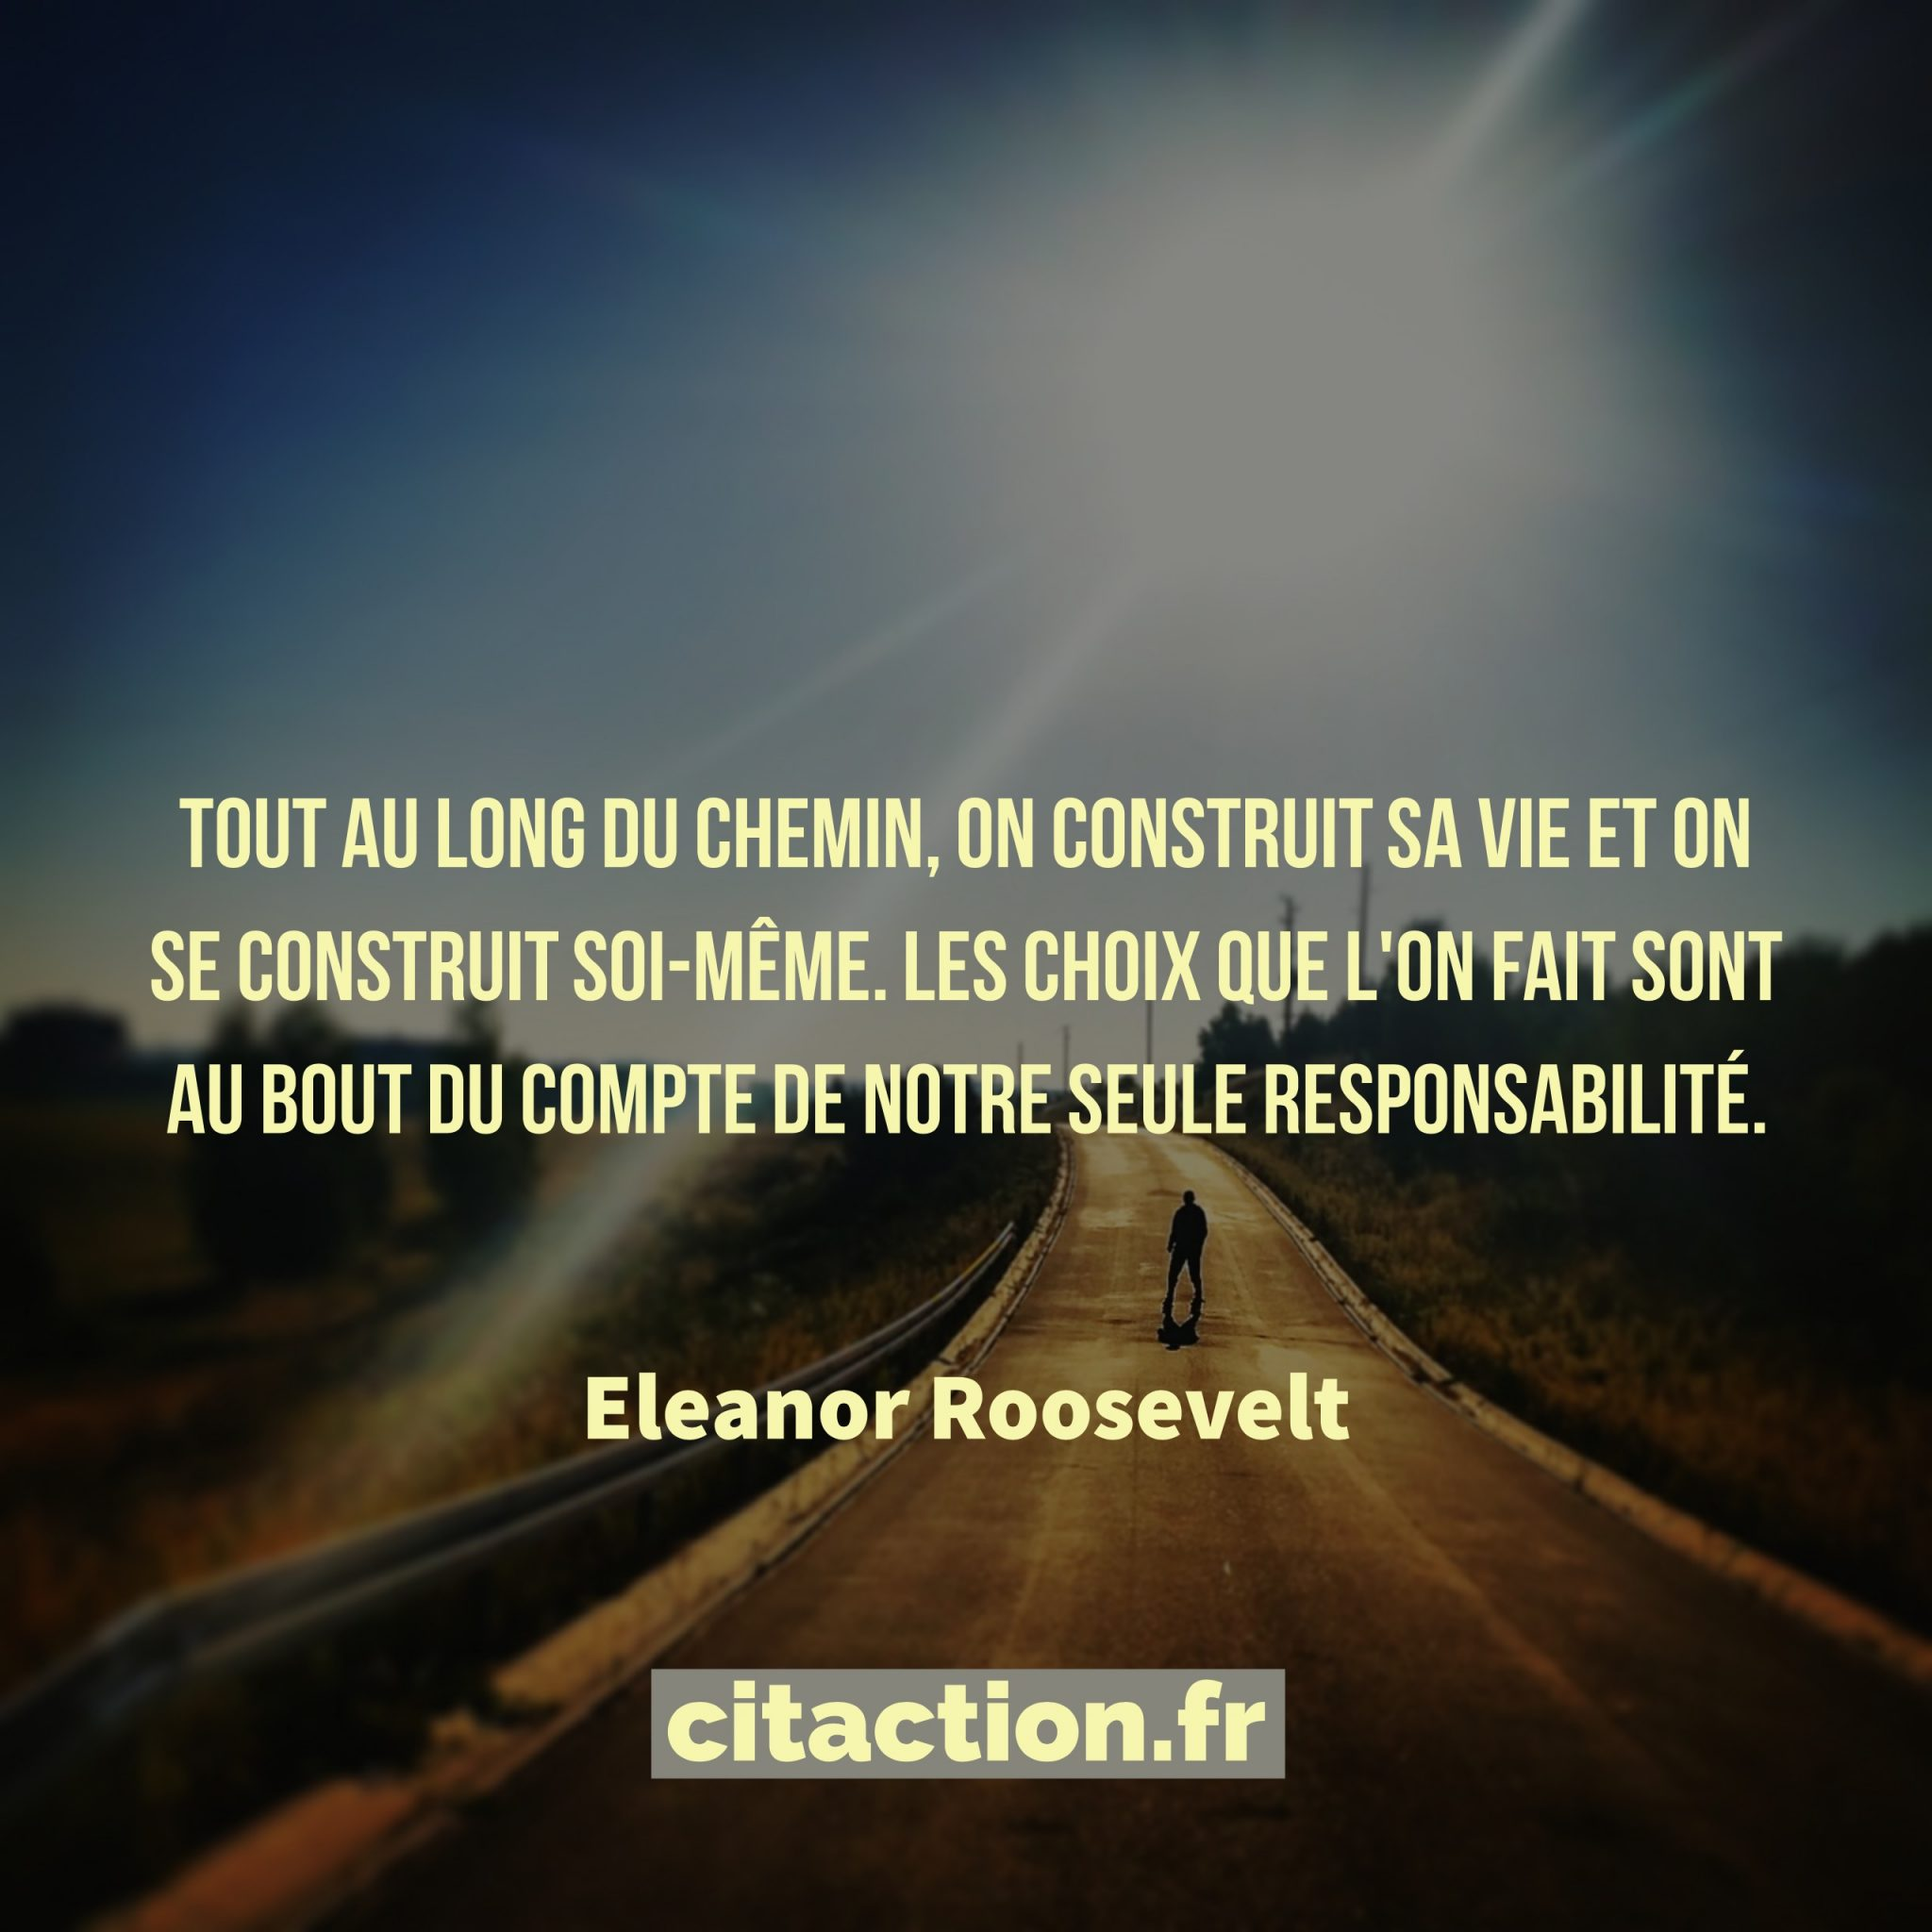 Tout au long du chemin, on construit sa vie et on se construit soi-même.